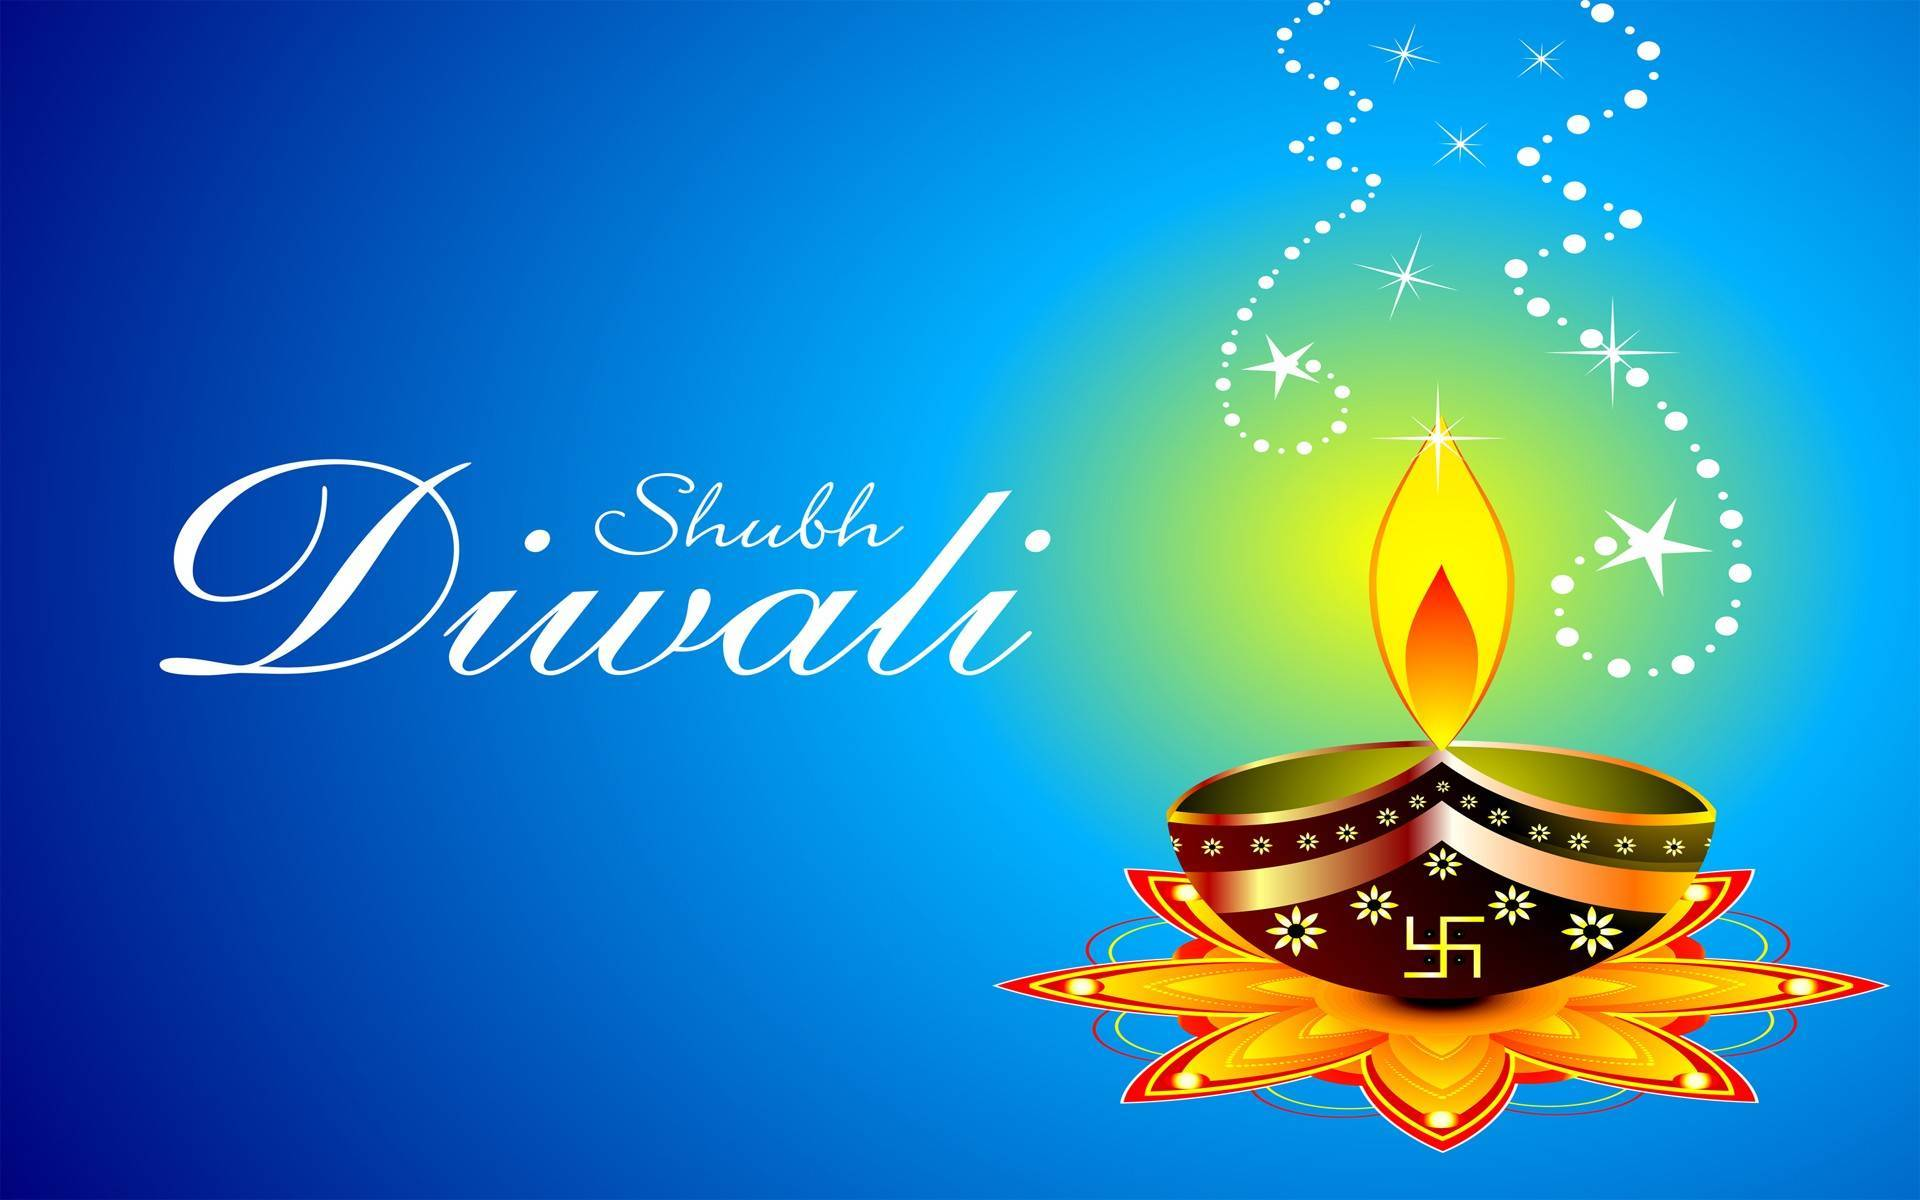 Happy Diwali Hd Images, Wallpapers, Picture & Photos - Download